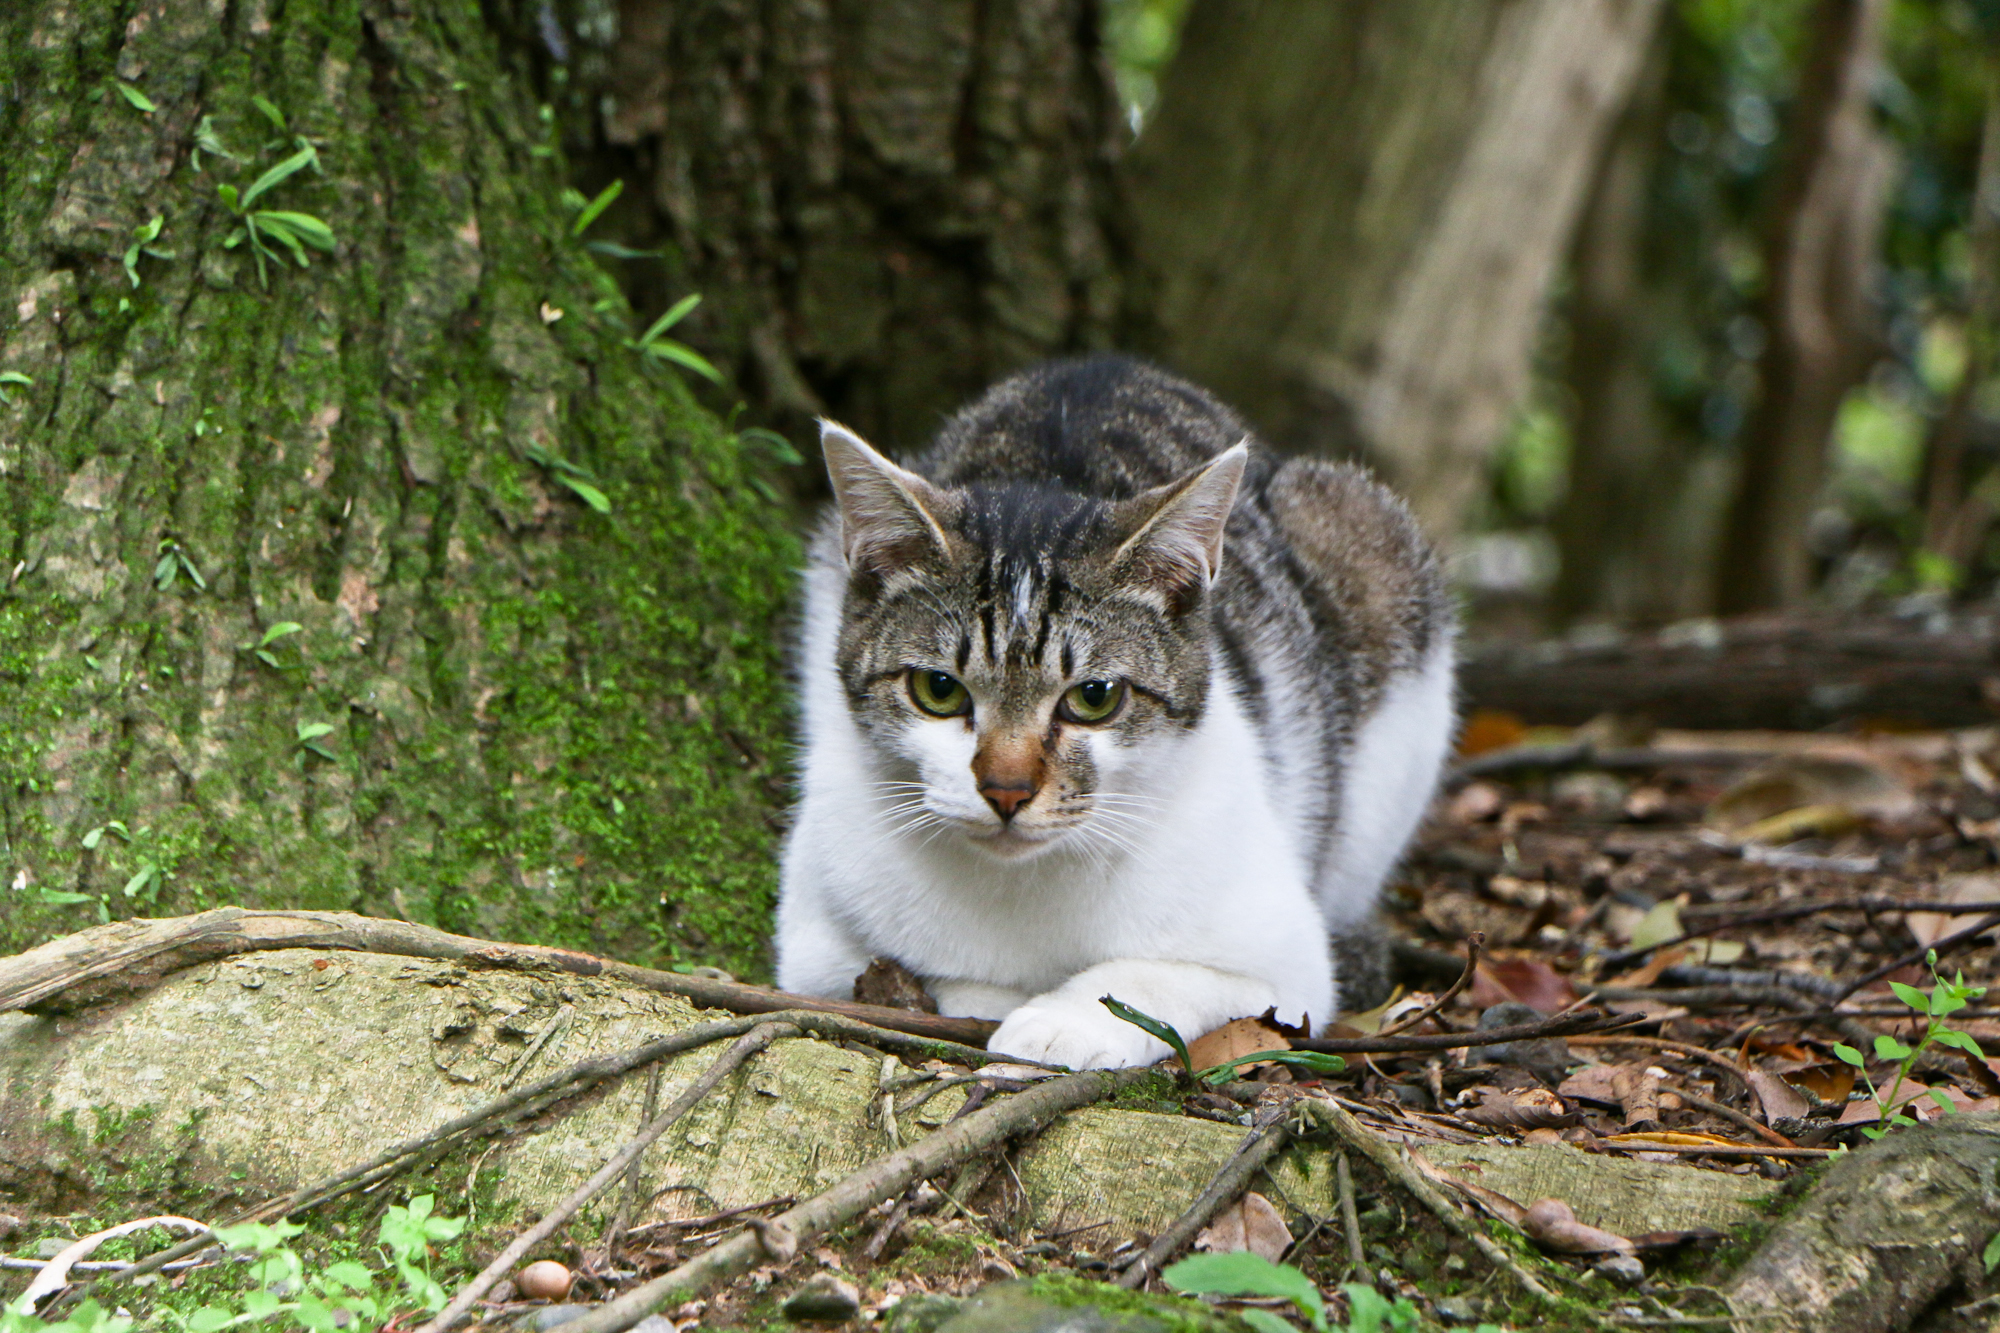 Feral Cat, Mishima Taisha Shrine, Izu Peninsula